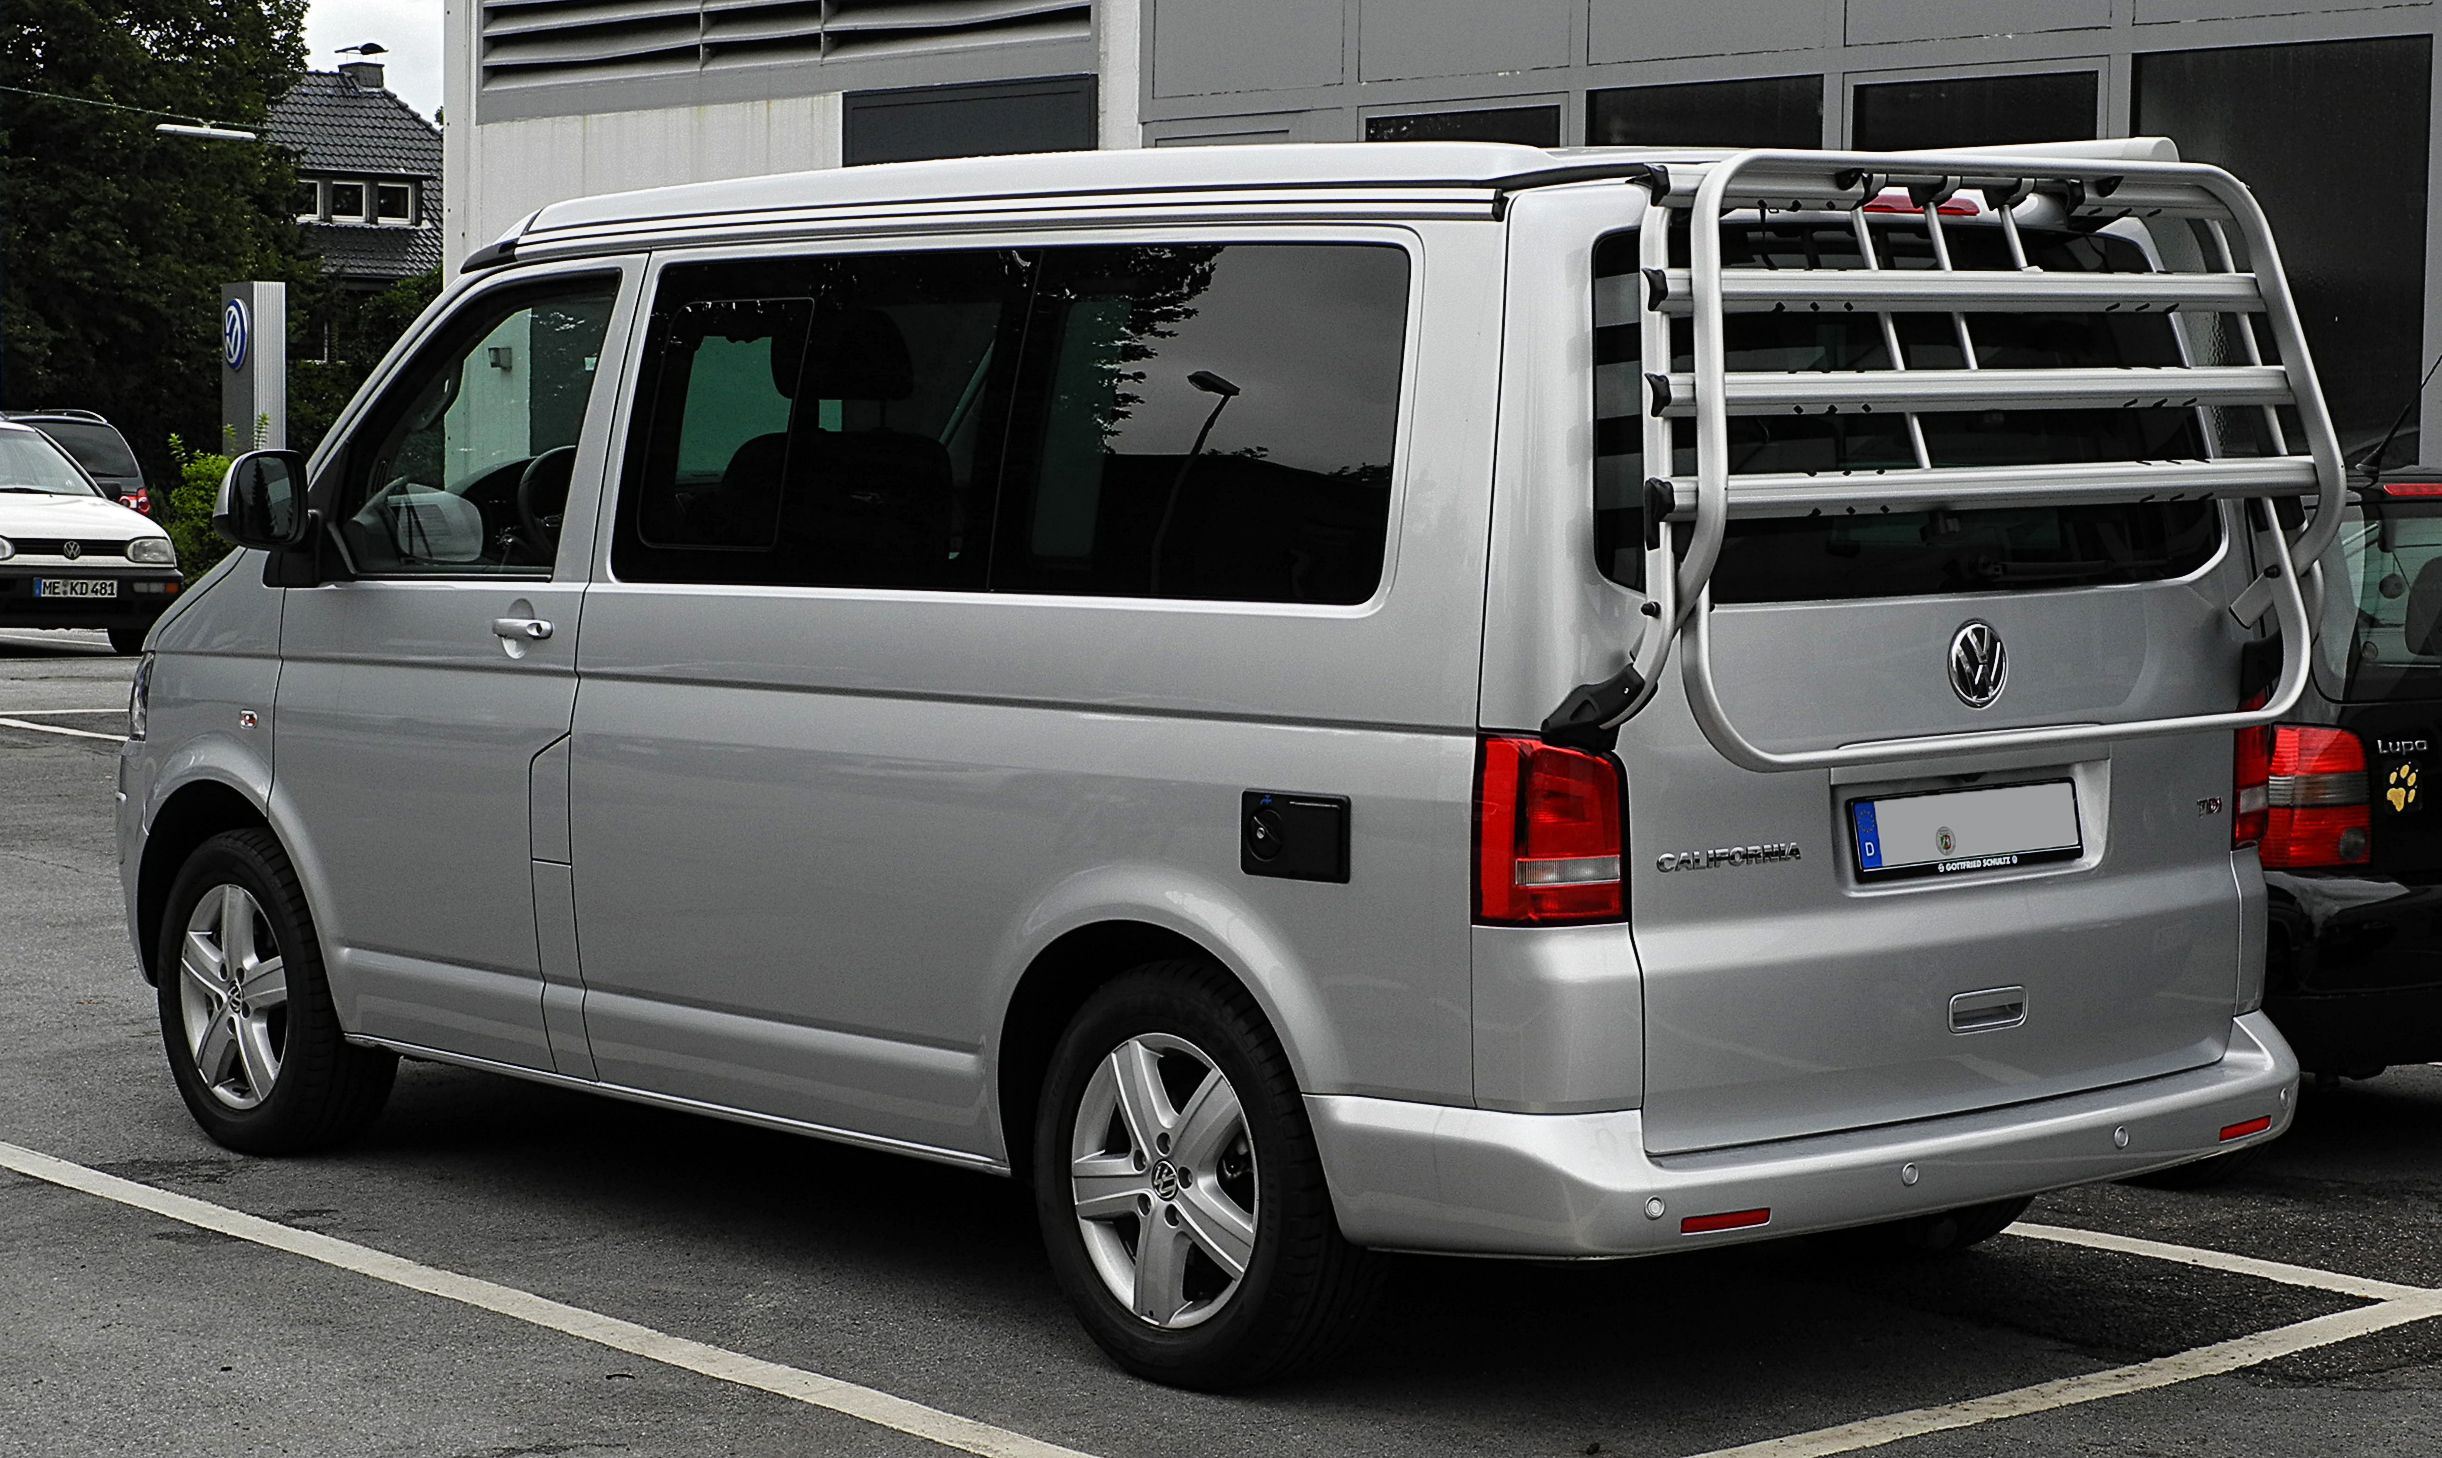 file vw california europe 2 0 tdi t5 facelift heckansicht 30 juli 2011. Black Bedroom Furniture Sets. Home Design Ideas